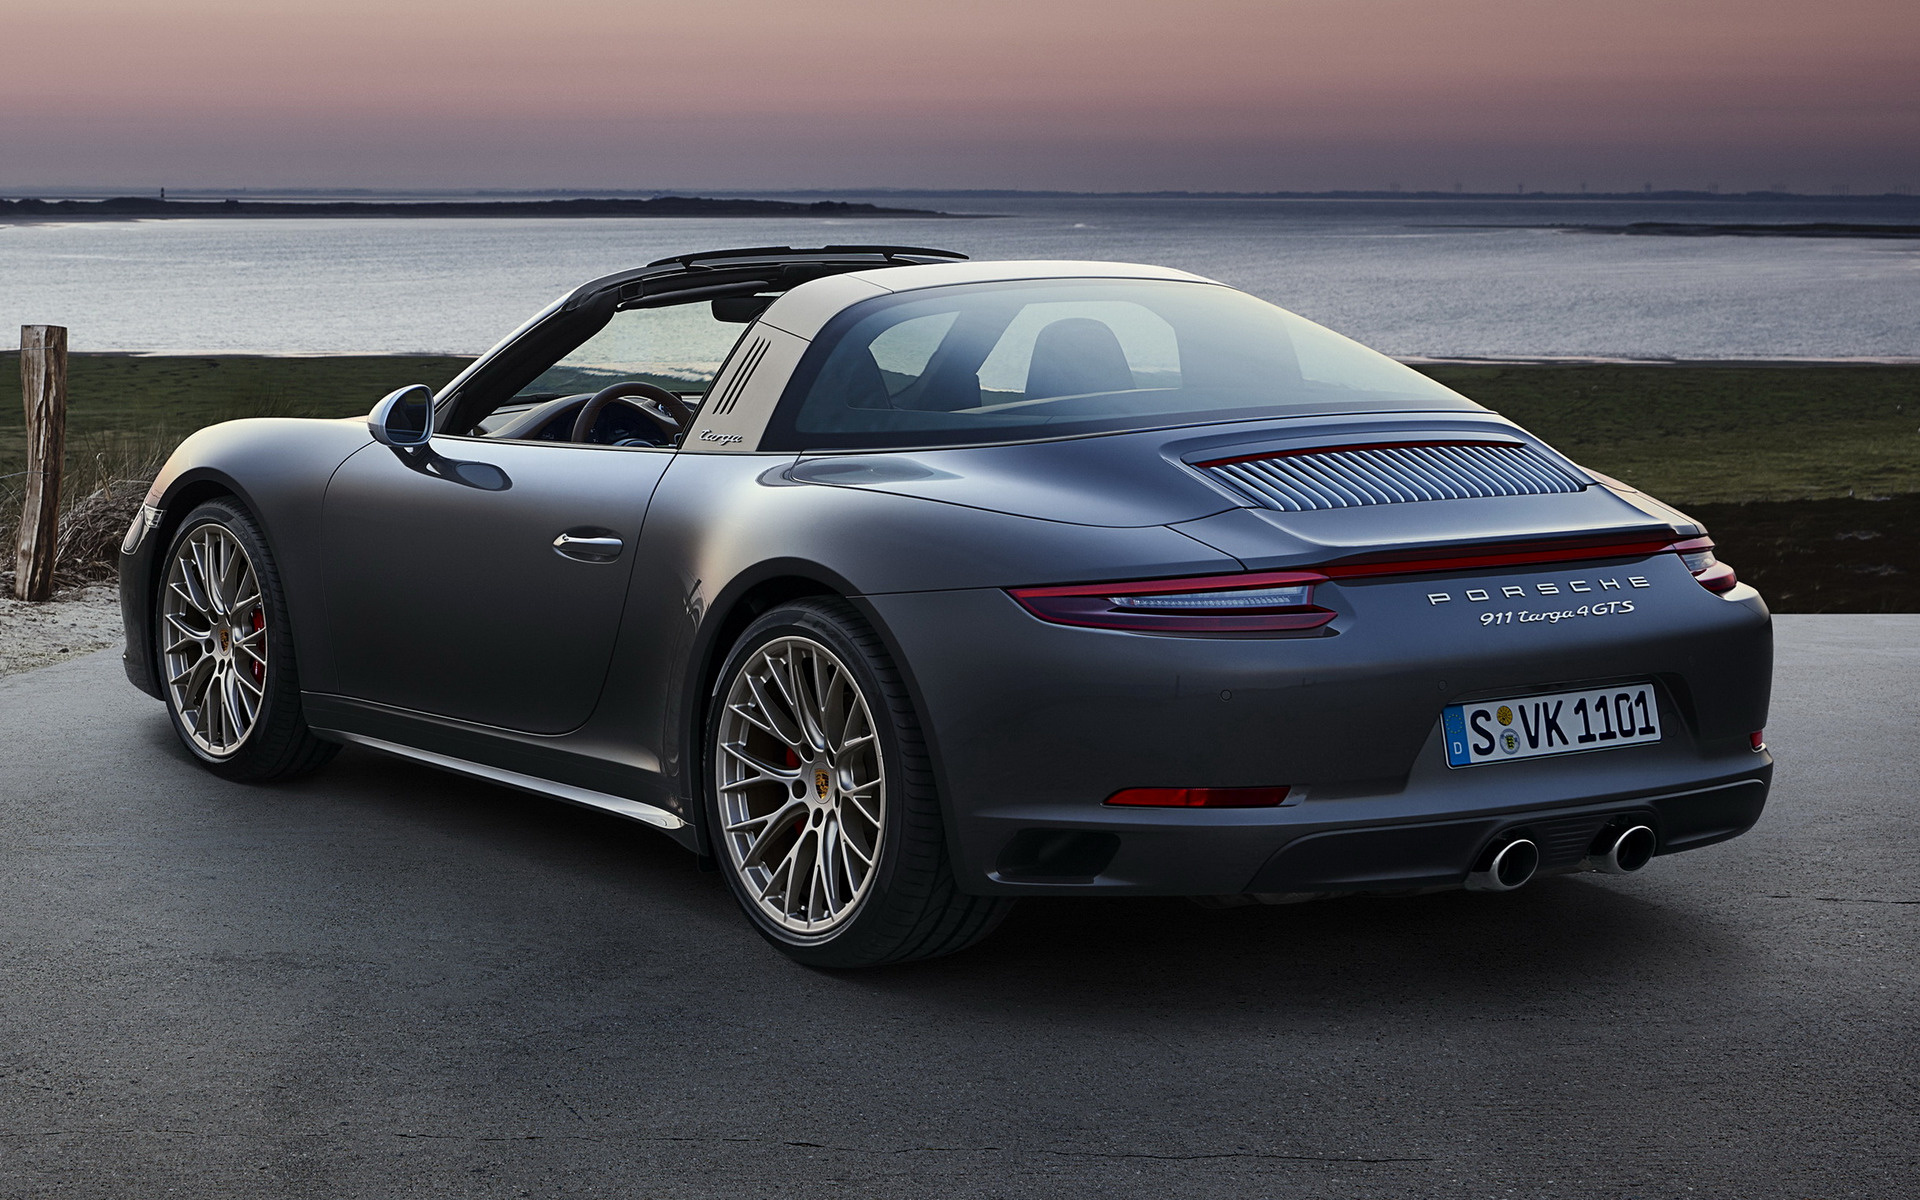 2018 Porsche 911 Targa Gts Exclusive Manufaktur Edition Wallpapers And Hd Images Car Pixel